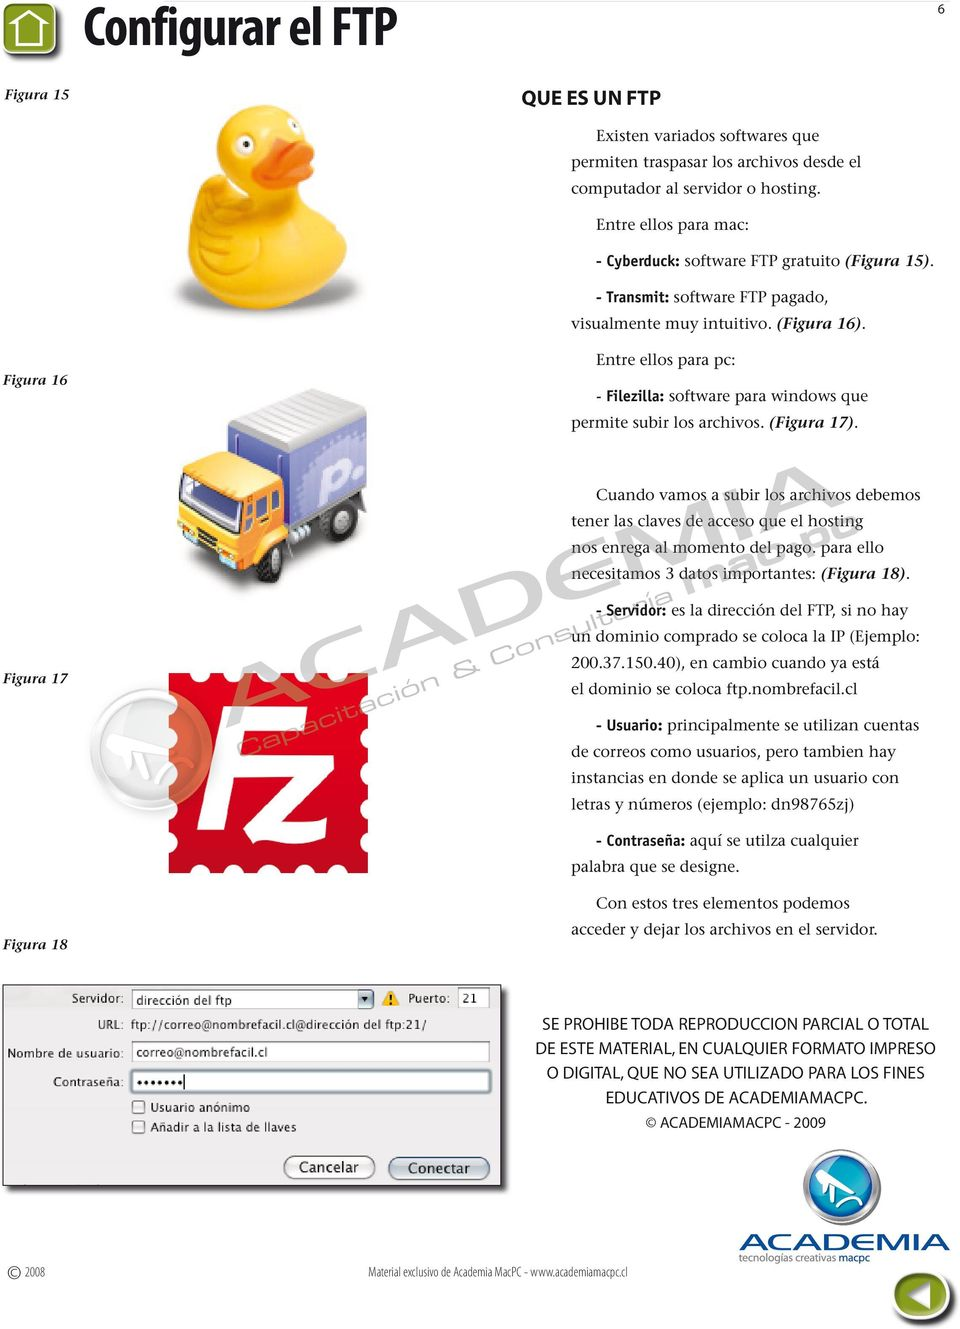 Figura 16 Entre ellos para pc: - Filezilla: software para windows que permite subir los archivos. (Figura 17).